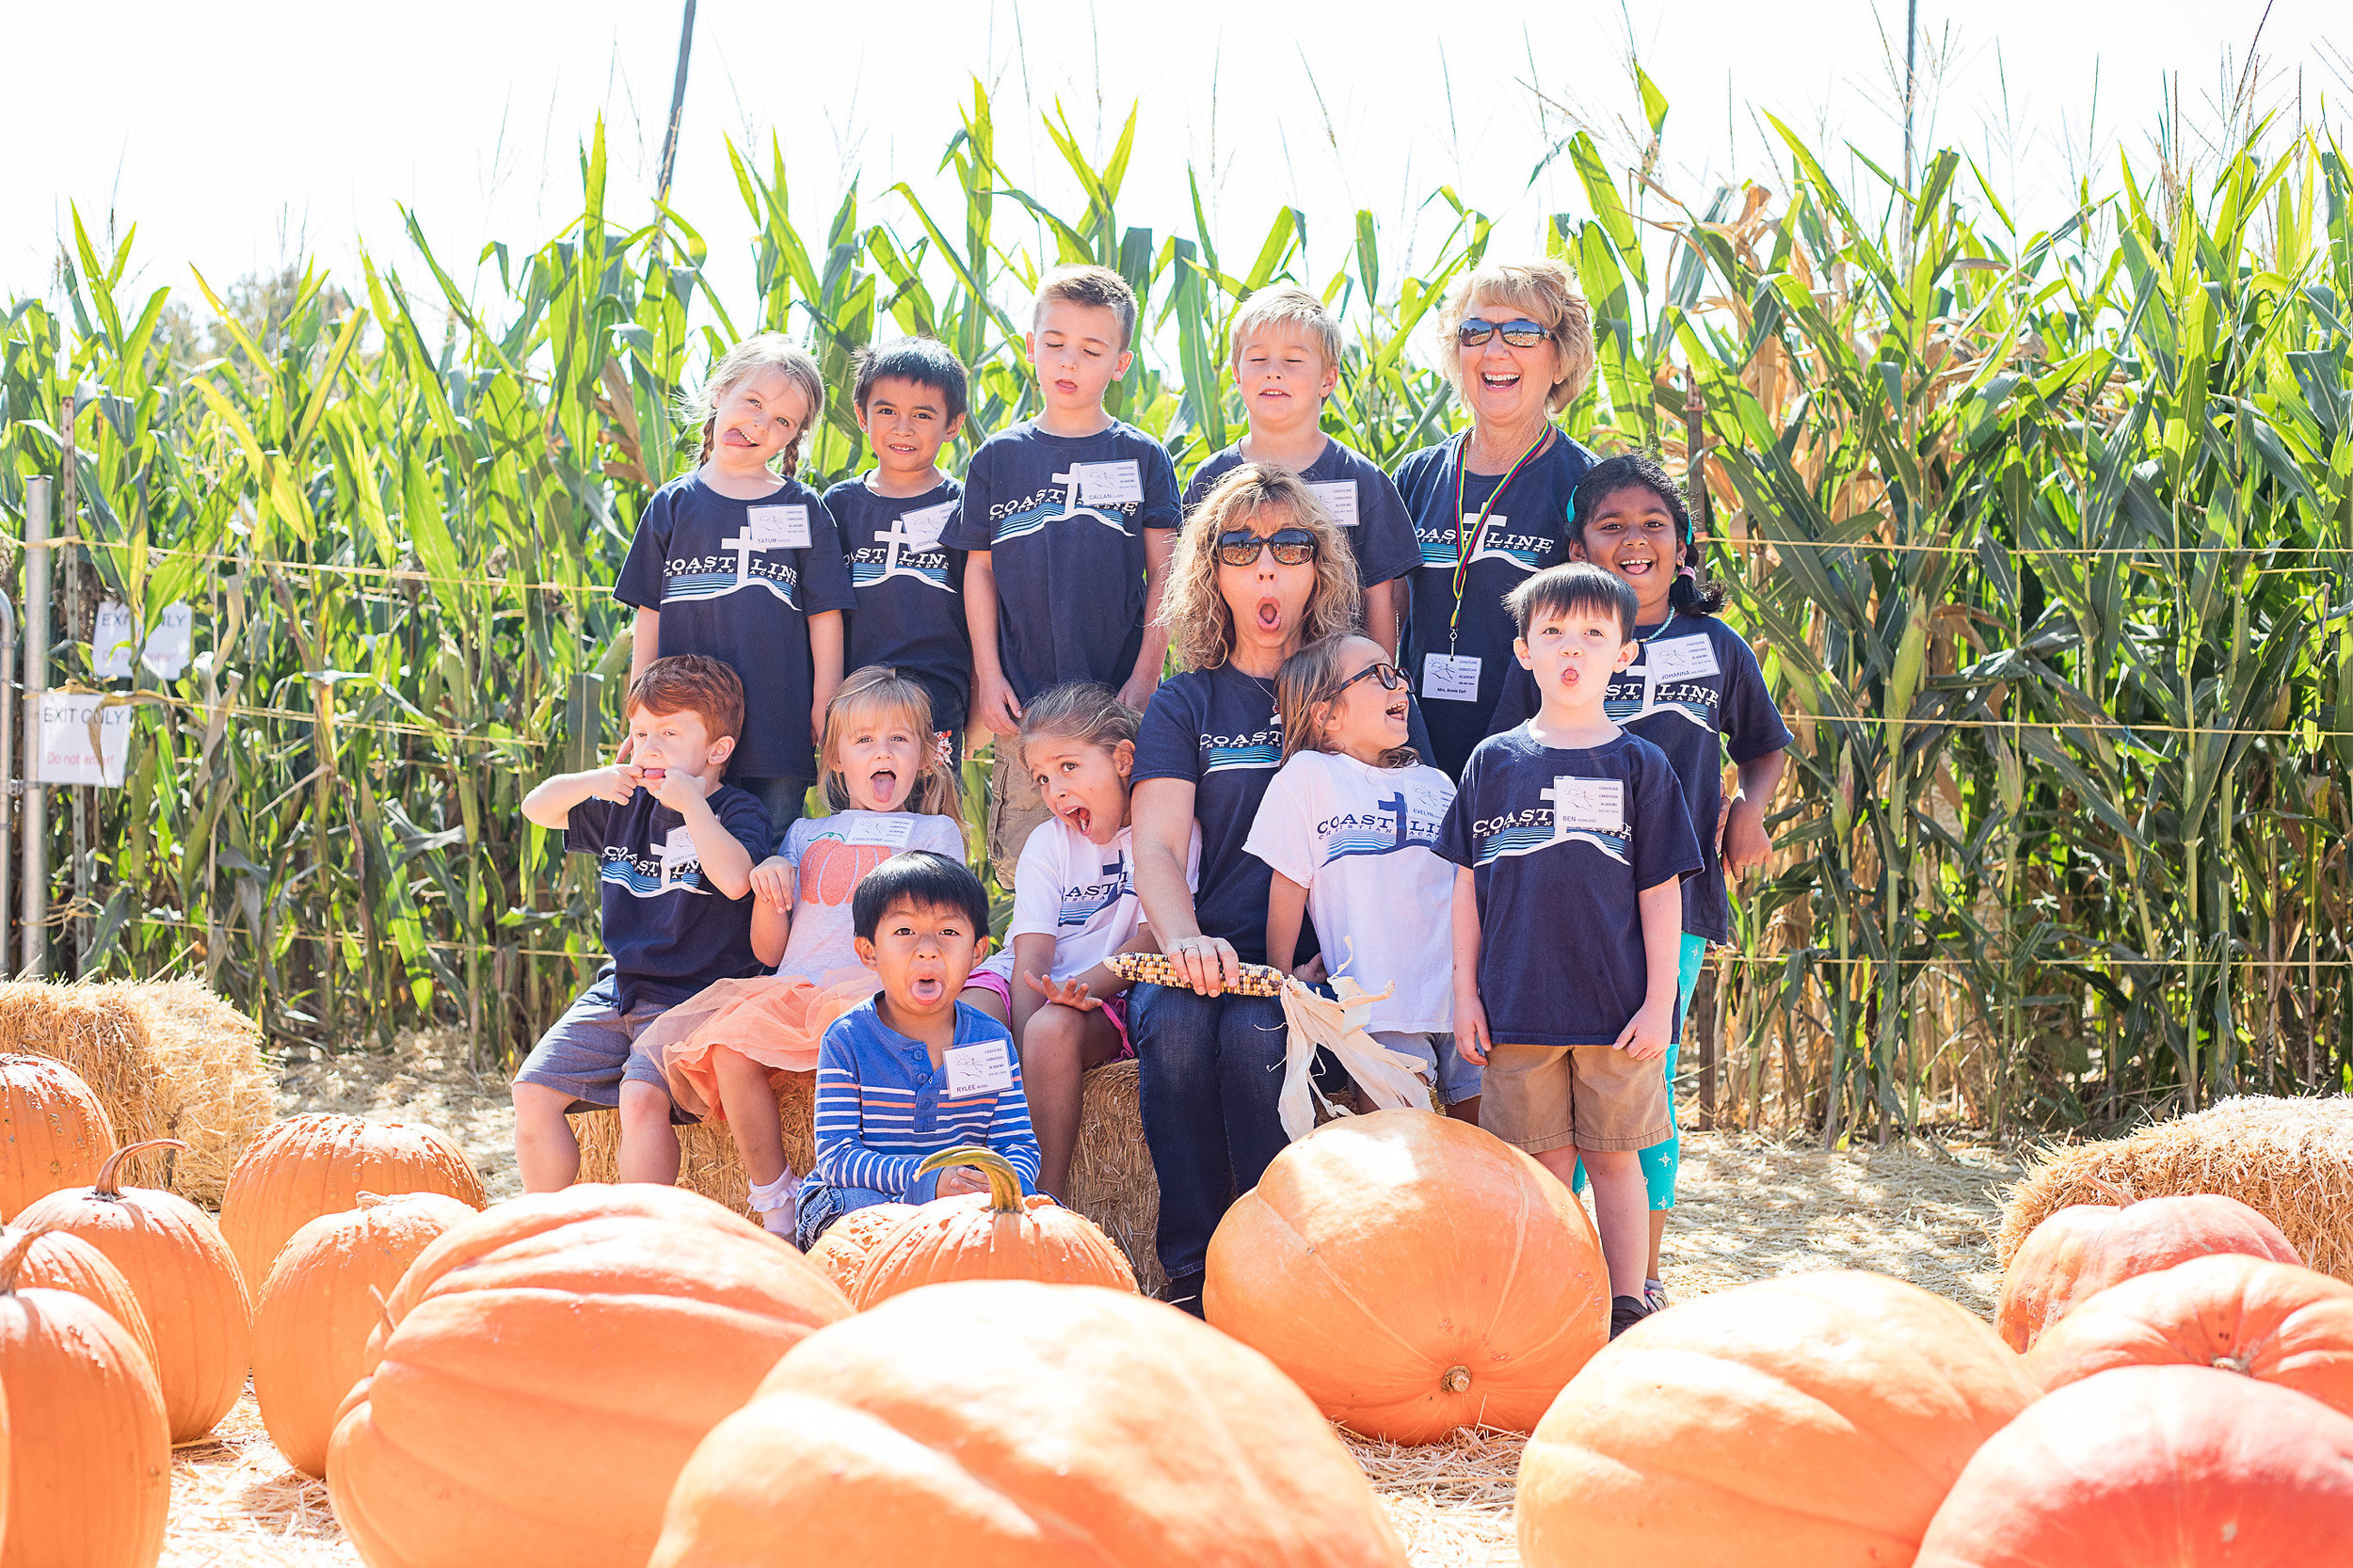 PumpkinPatchFieldTrip2017-18-8.jpg